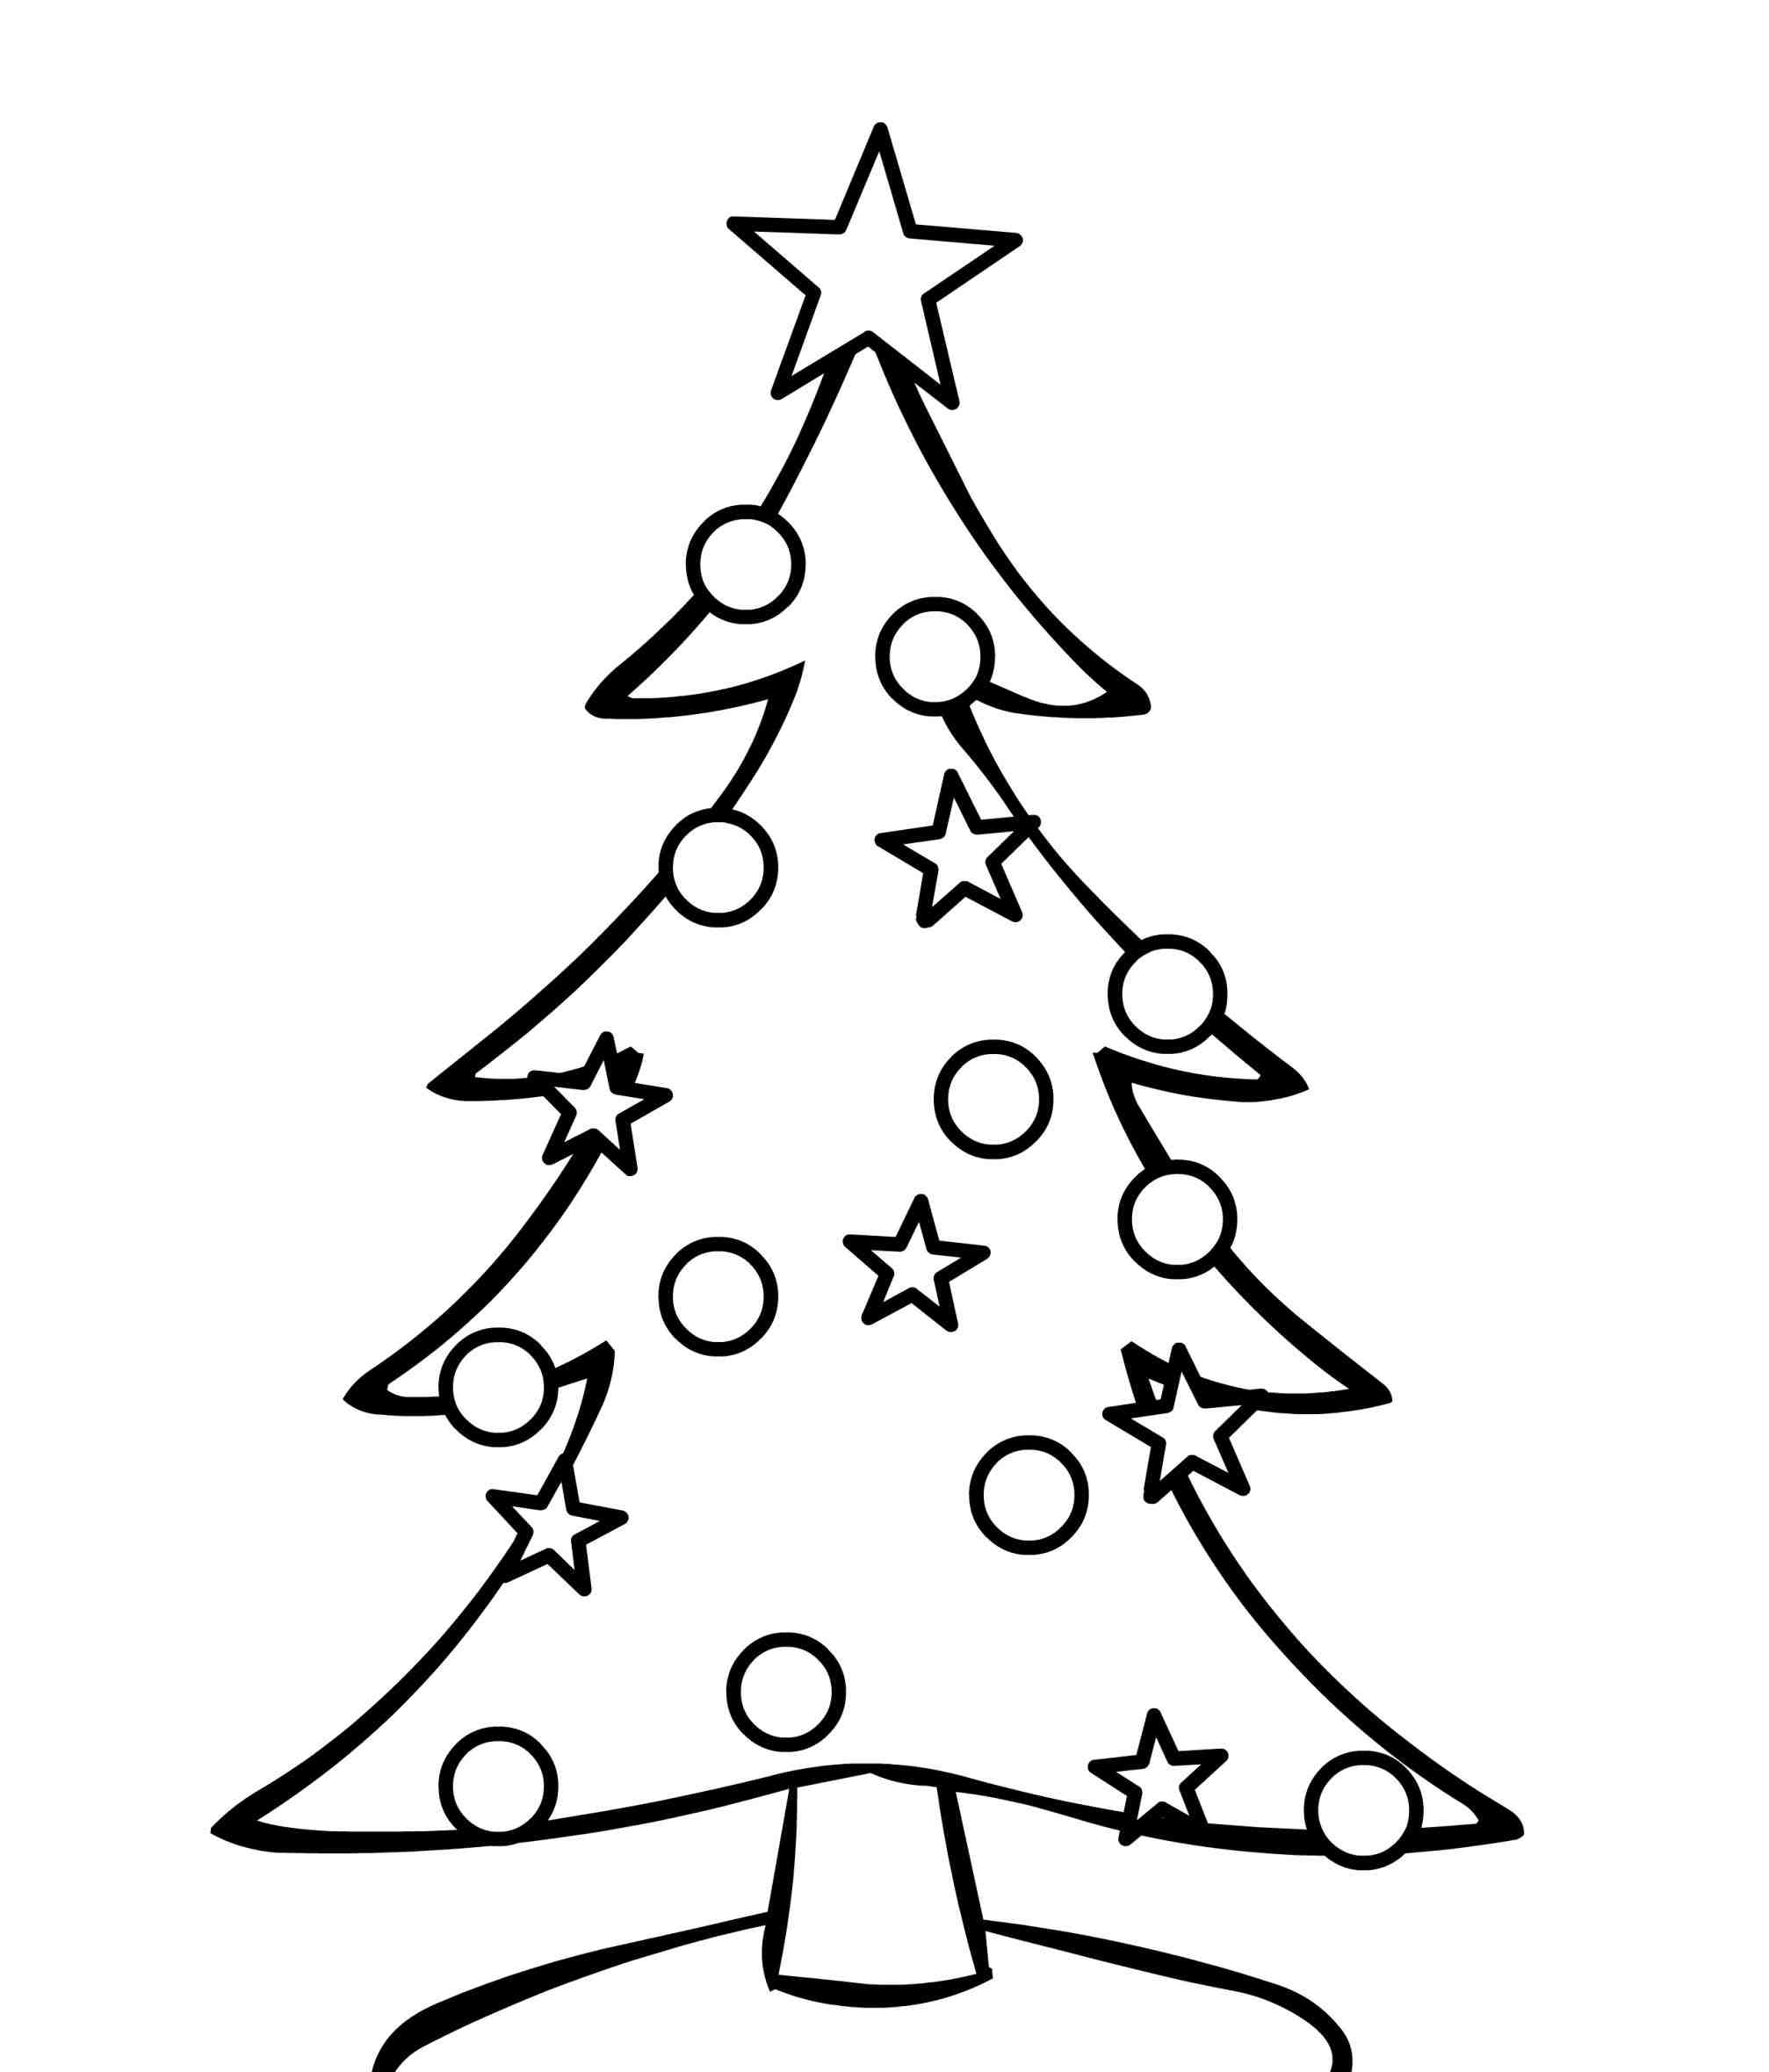 Black And White Christmas Tree Clipart | Free download on ...